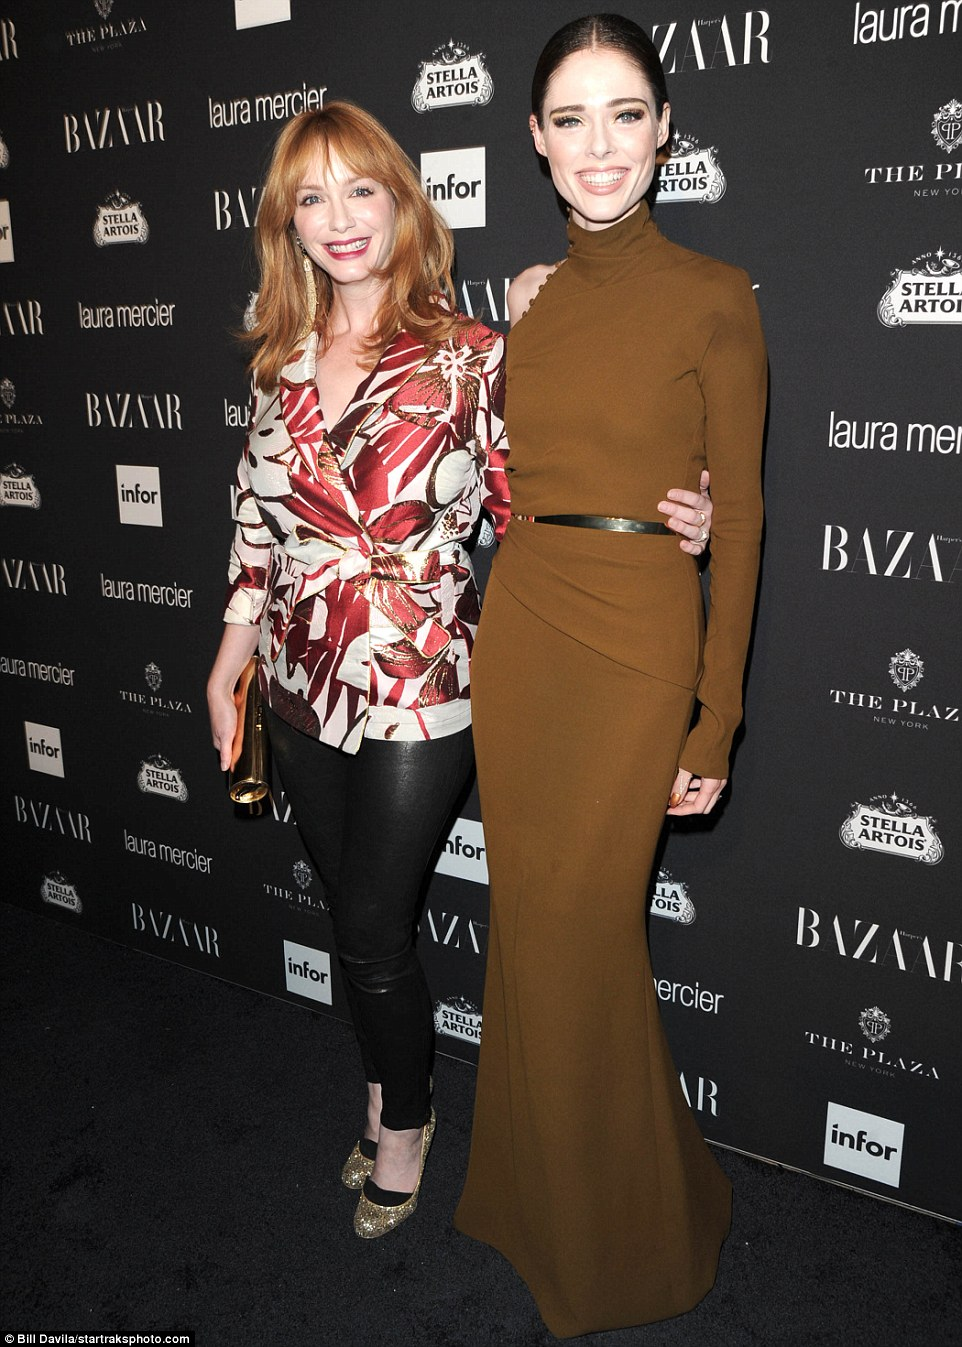 All smiles! Coco and Christina Hendricks looked happy to see each other as they hit the black carpet